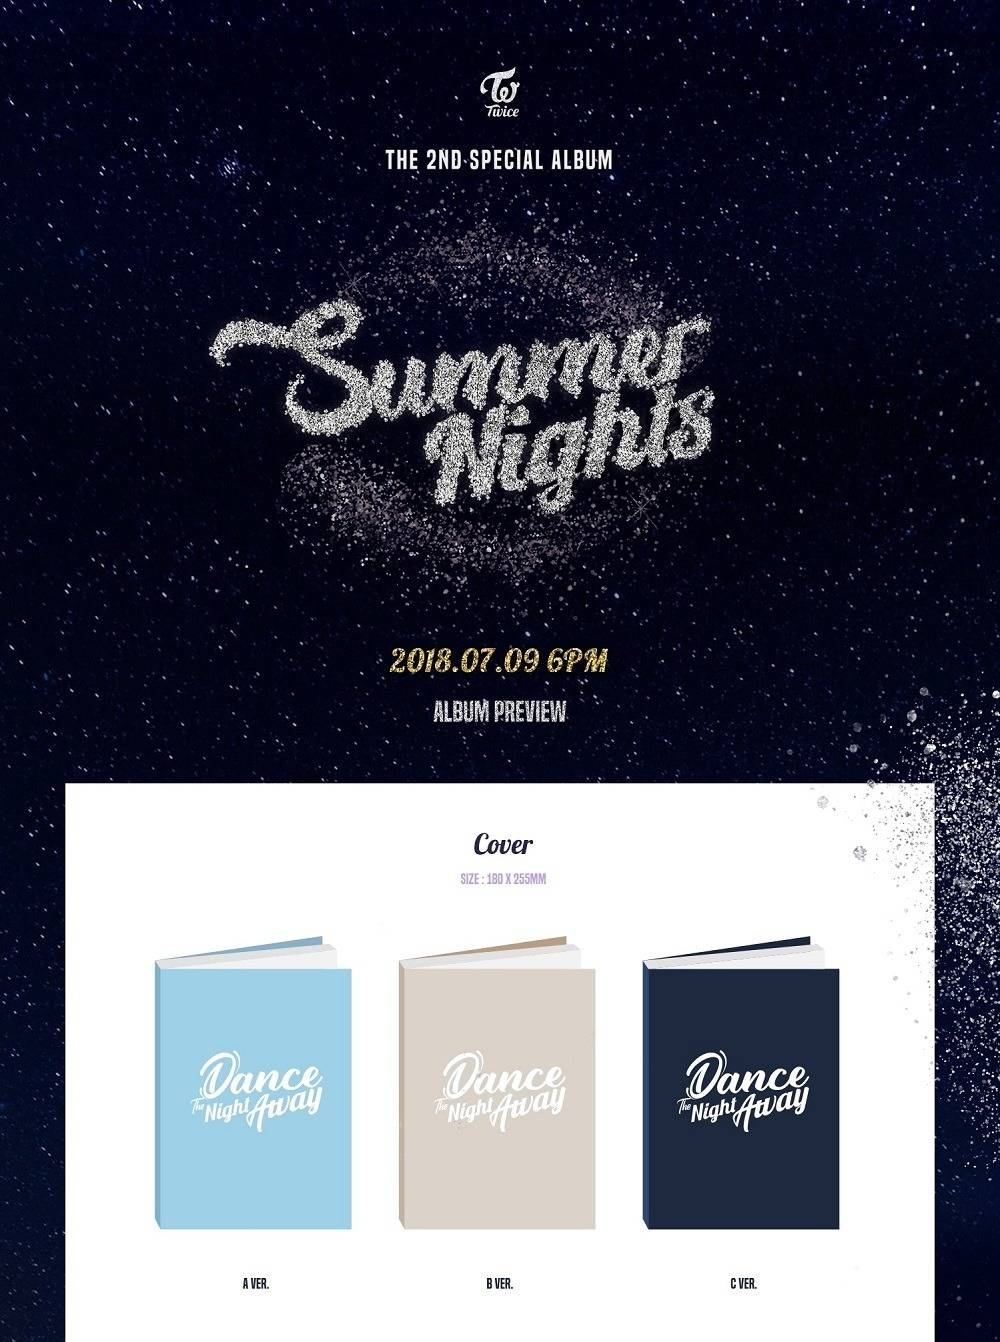 TWICE - 2nd Special Album: Summer Nights CD